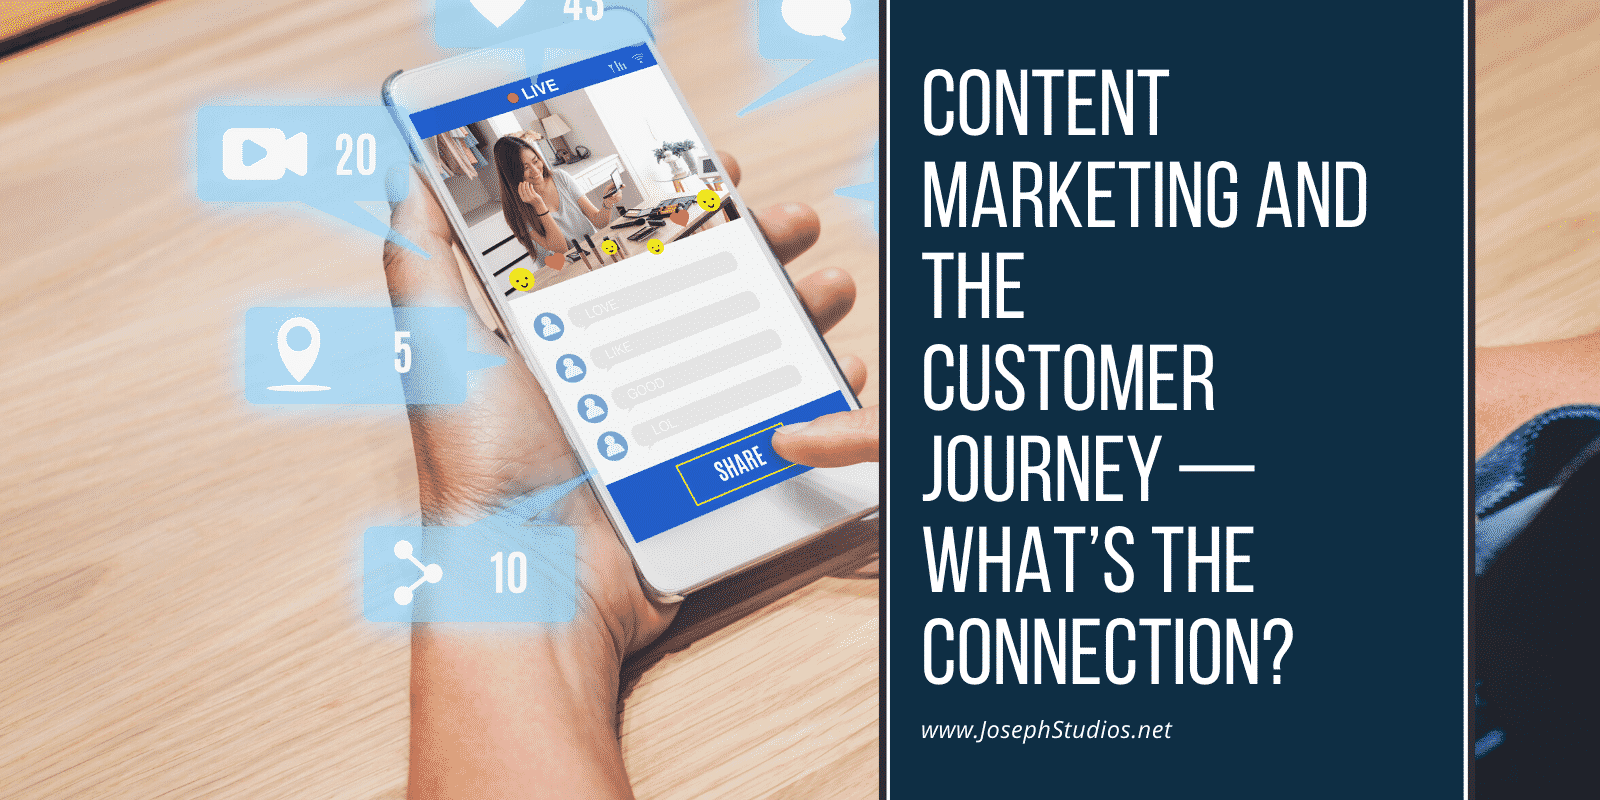 Content Marketing and the Customer Journey, Content Marketing and the Customer Journey — What's the Connection?